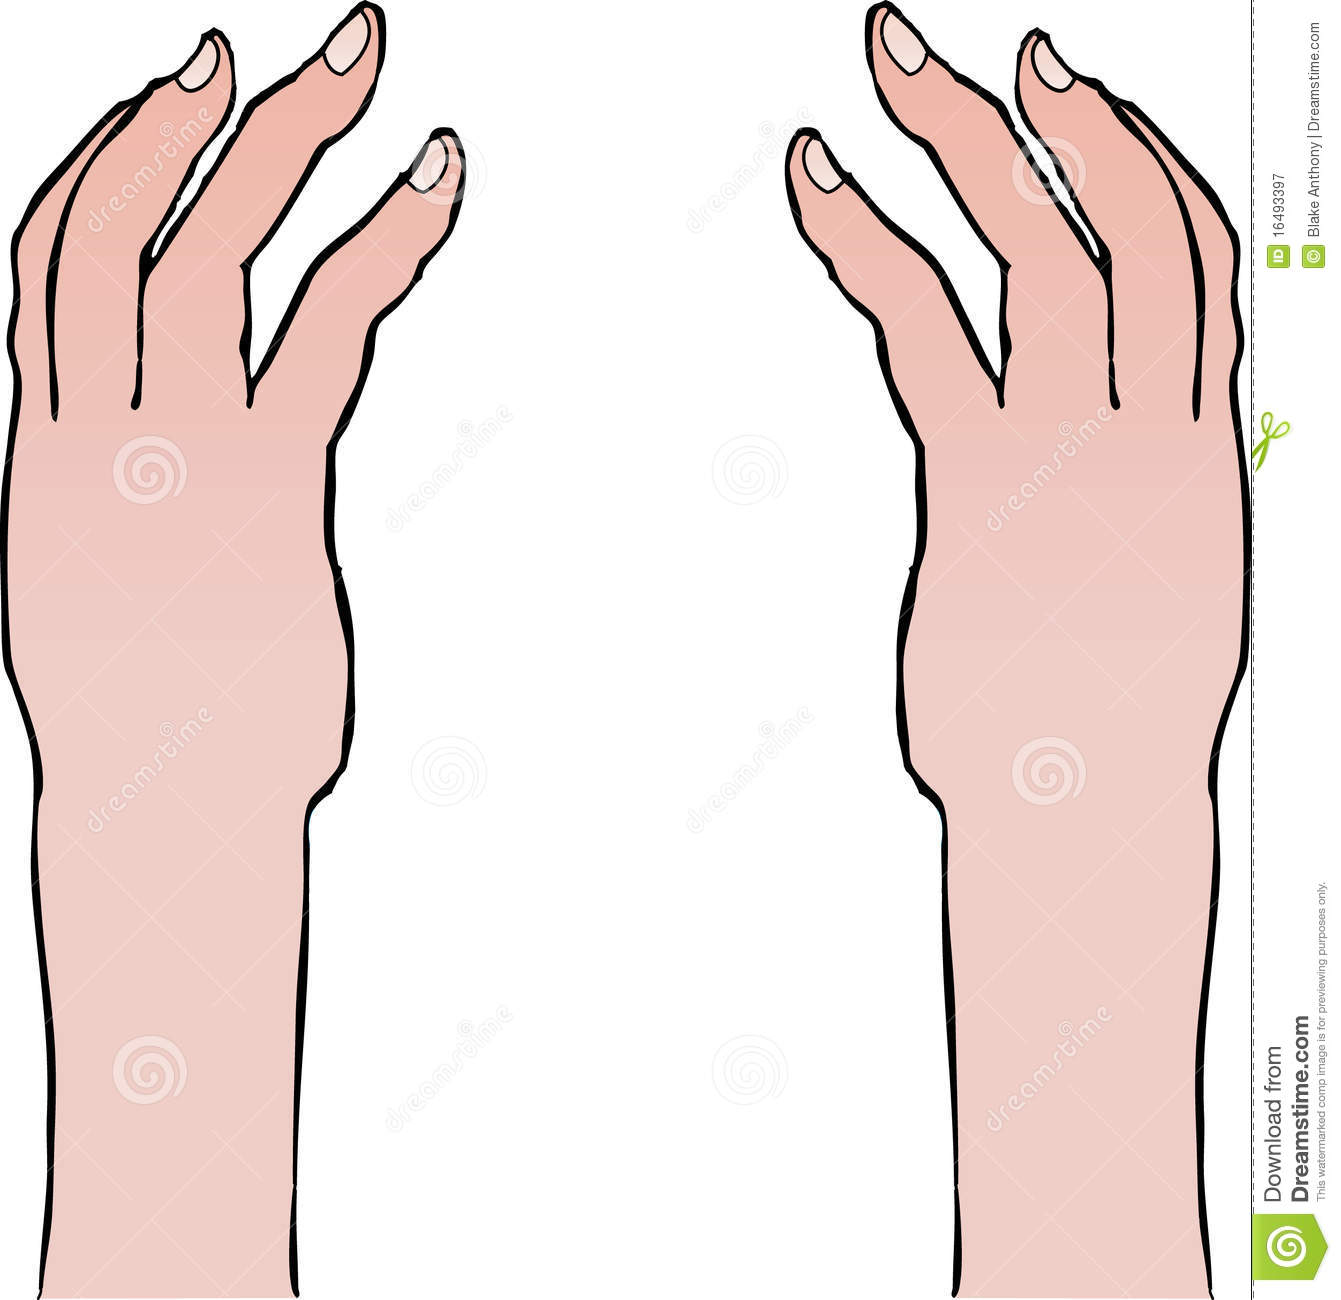 Reaching Arms Clipart.